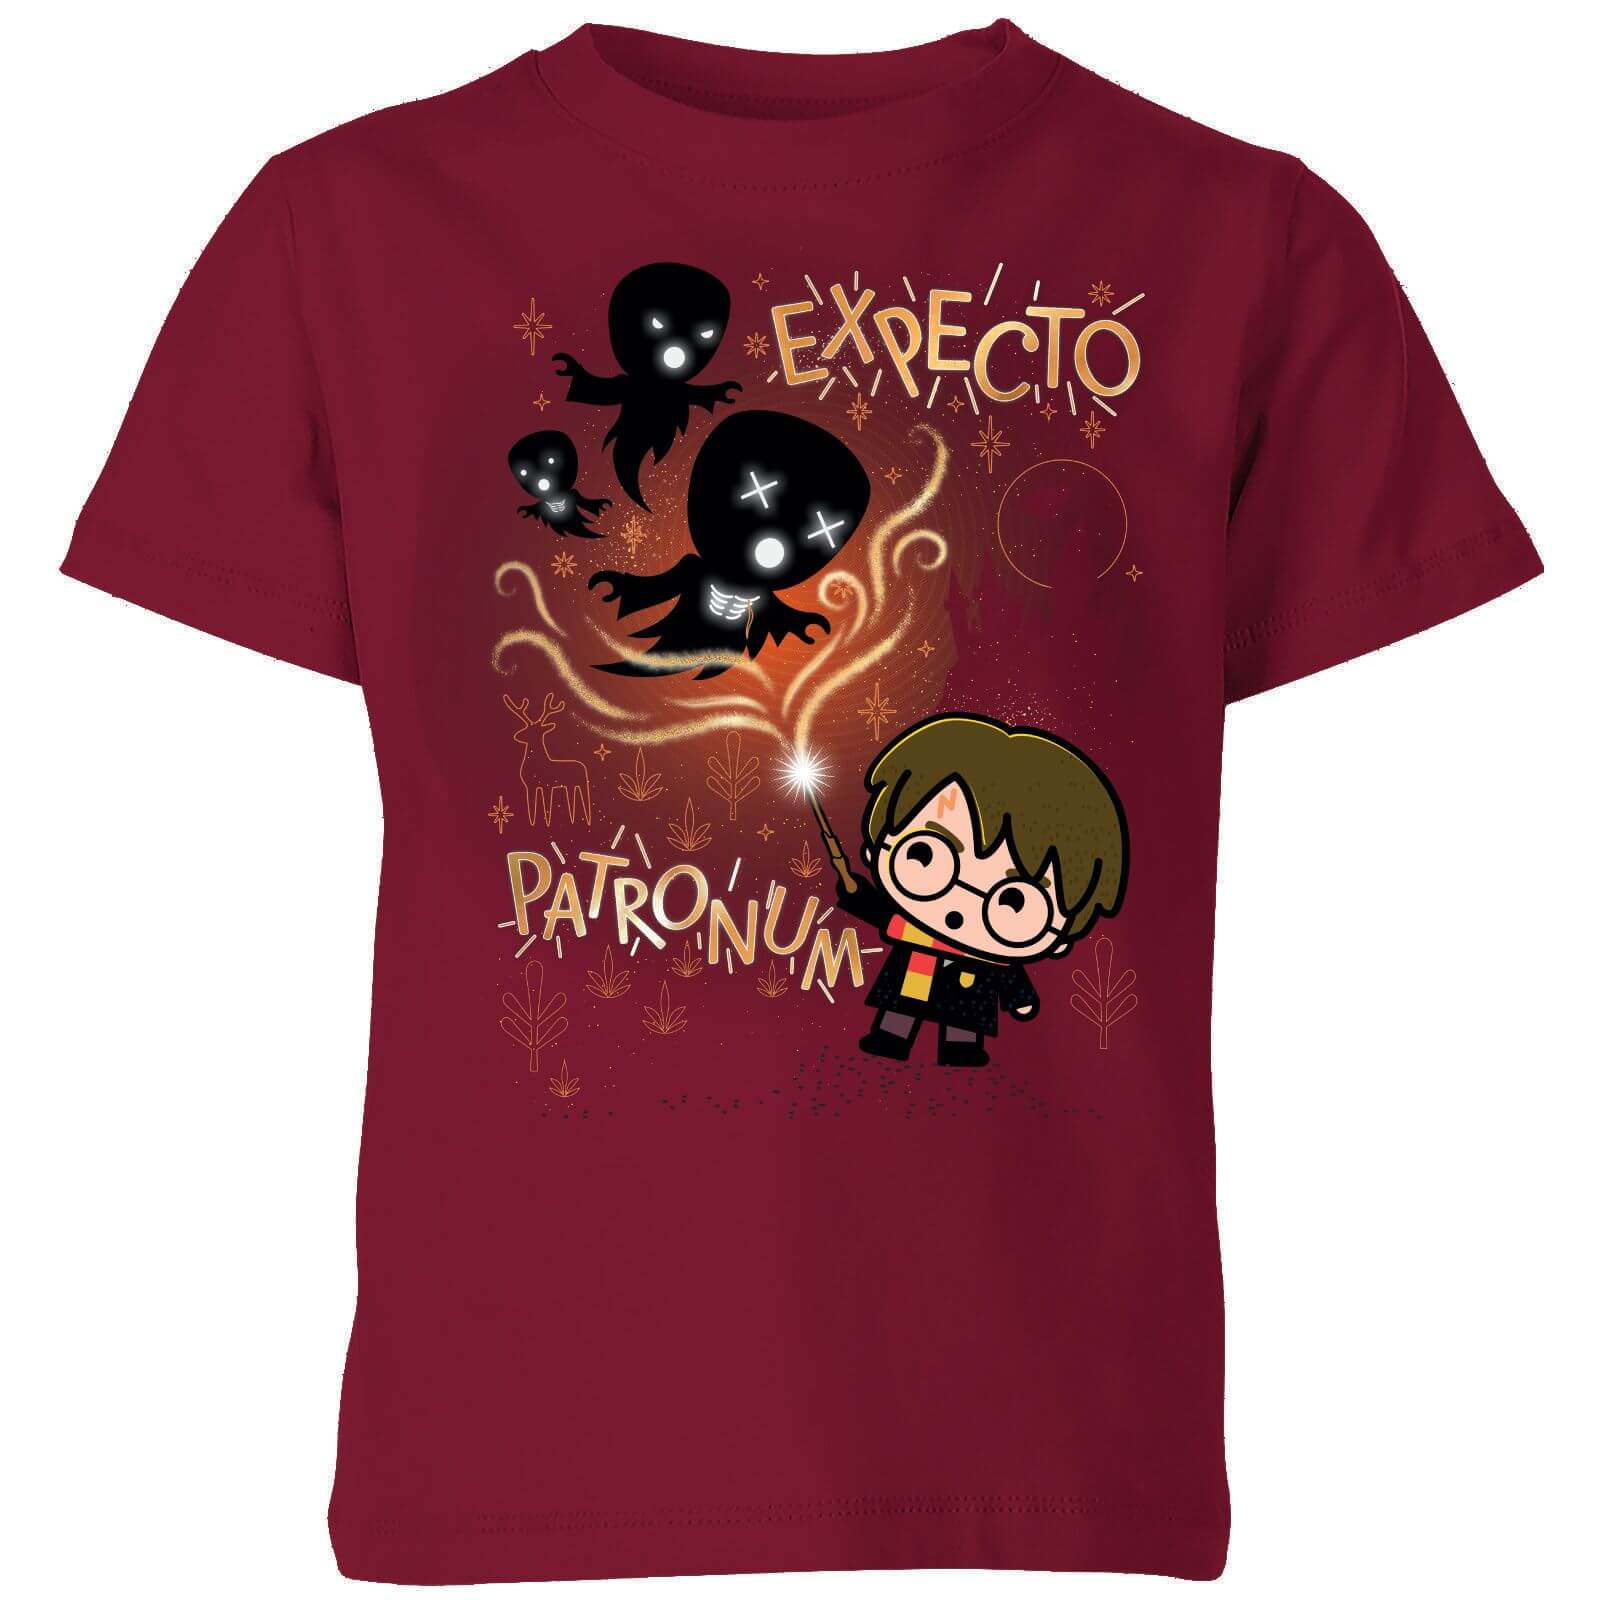 Kids' Expecto Kids Harry Patronum Burgundy Potter T Shirt CBWxorde